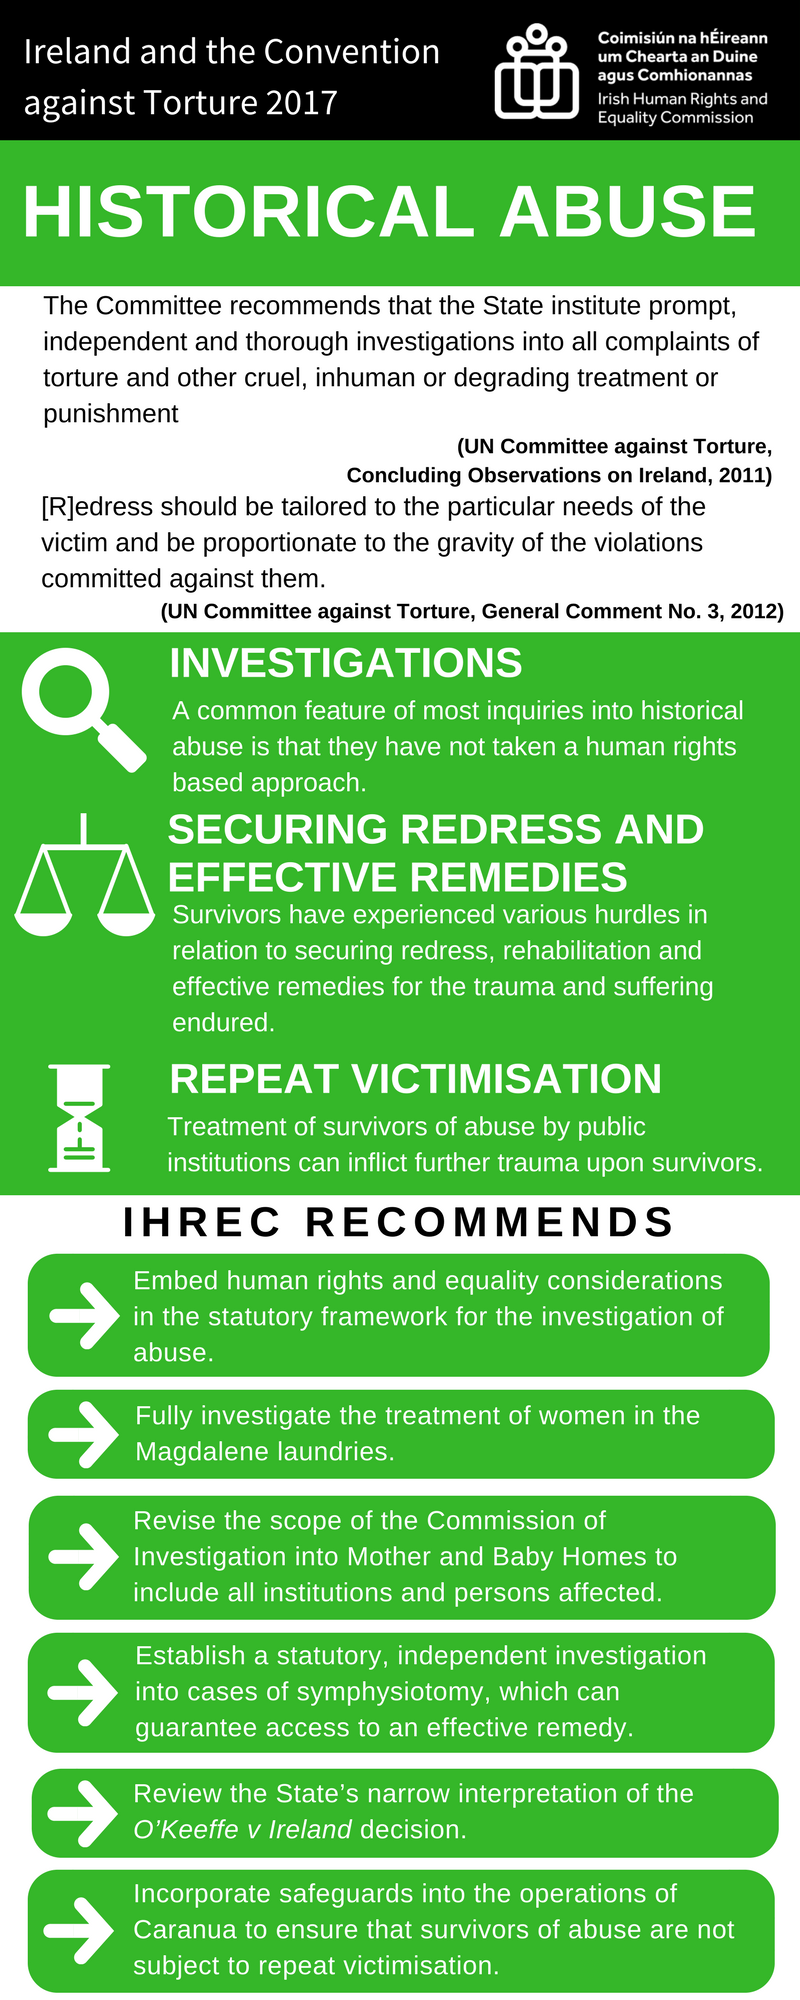 Access to redress & rehabilitation for victims of historical abuse is raised in our #UNCAT #TortureCtte report. https://t.co/mlpDYcbQ31 https://t.co/Ls5EDWQ2iO